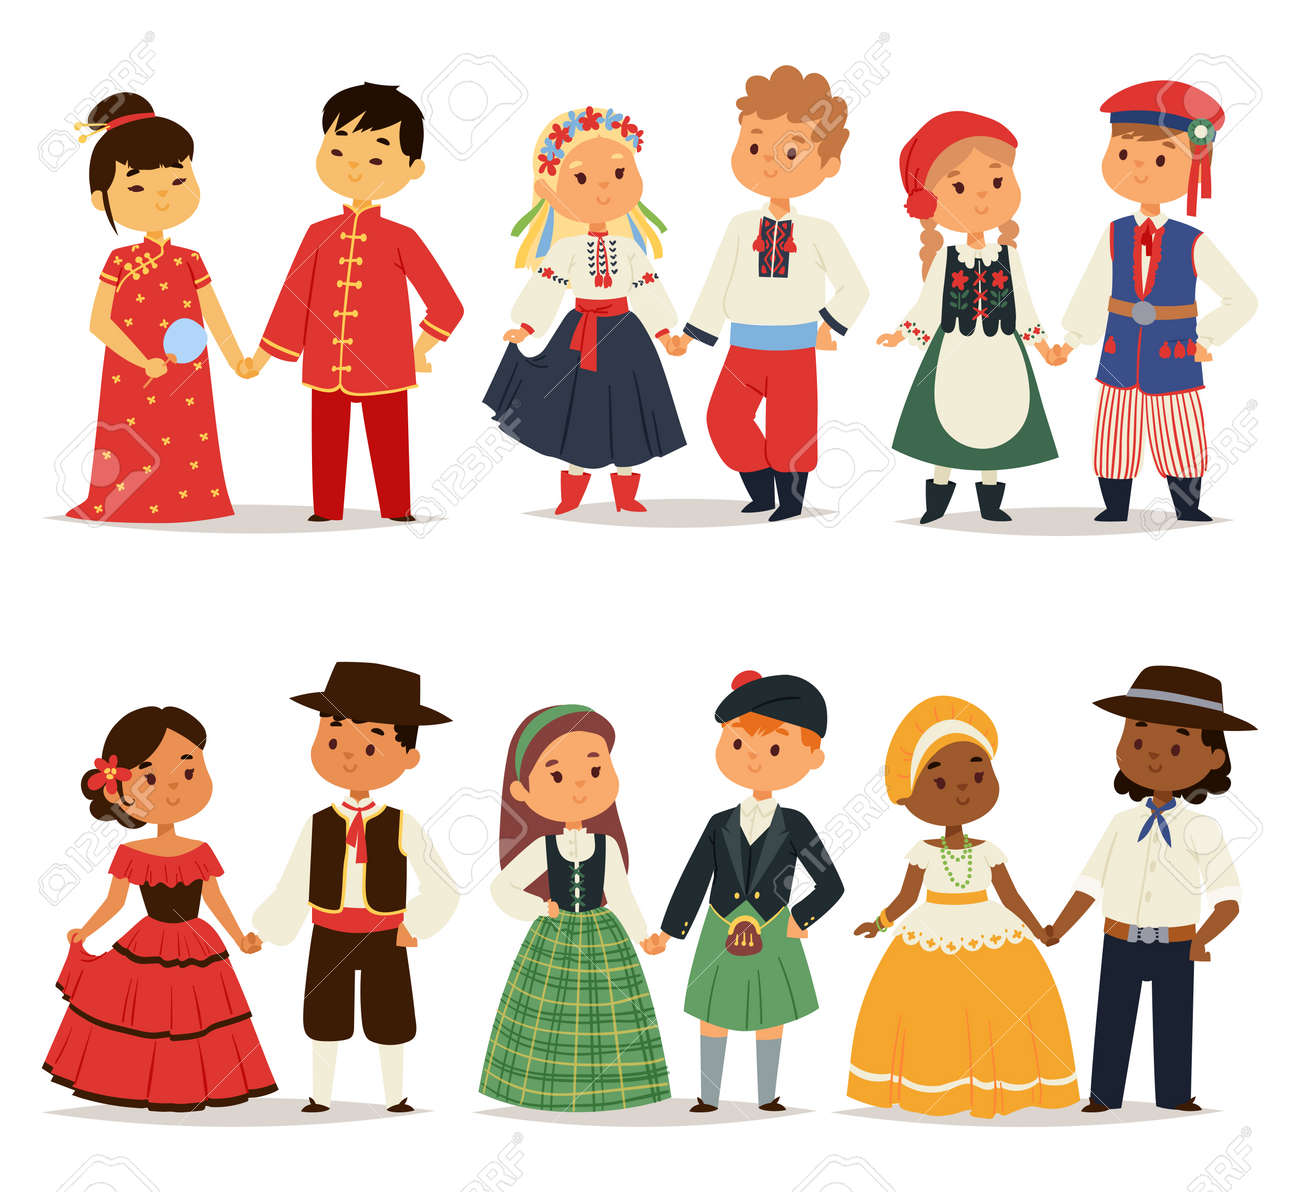 Illustration - Traditional kids couples character of world dress girls and boys in different national costumes and cute little children nationality dress ...  sc 1 st  123RF.com & Traditional Kids Couples Character Of World Dress Girls And Boys ...